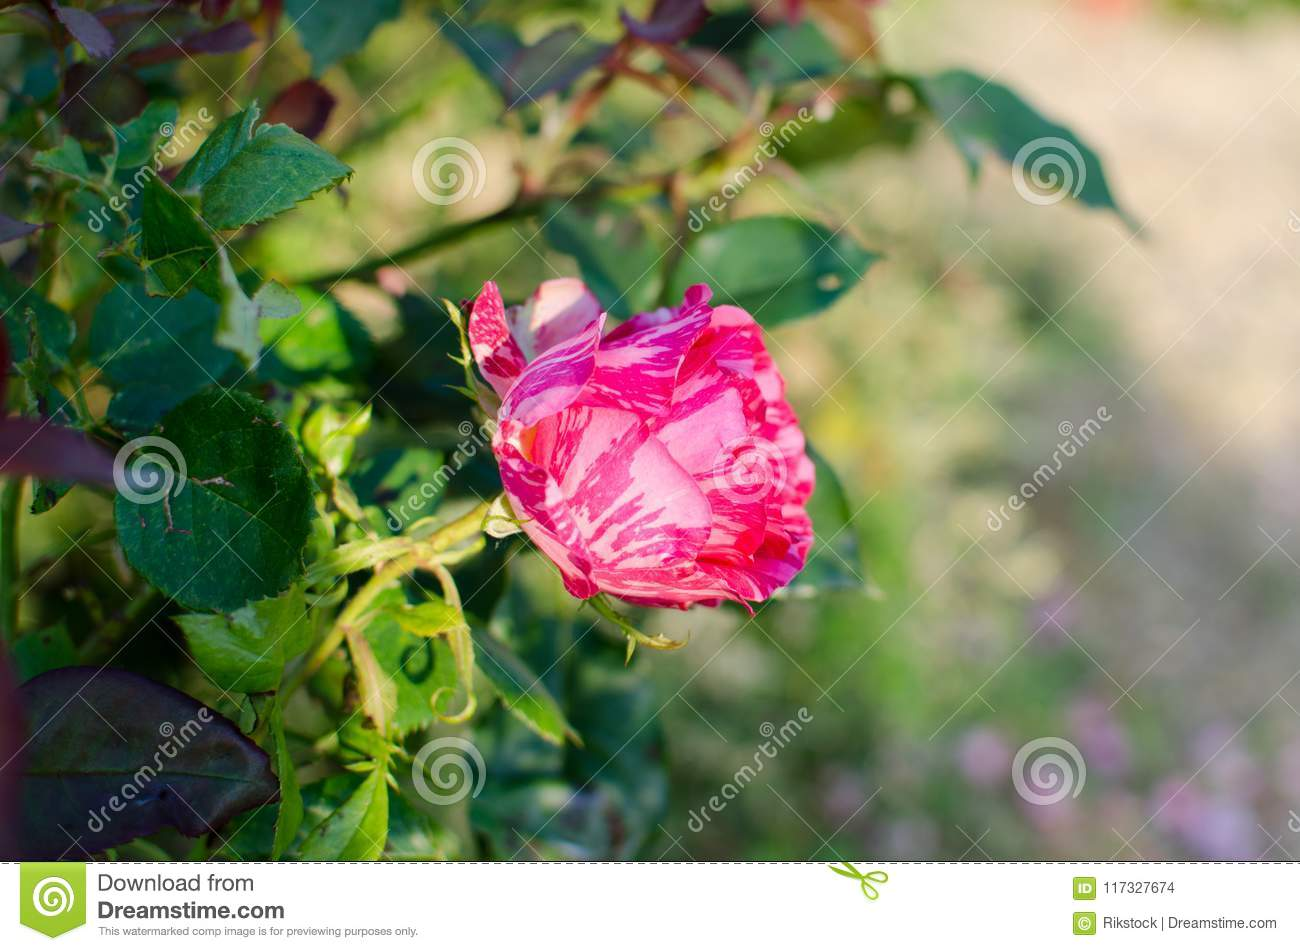 Rare rose with unrivaled beauty stock photo image of flower download rare rose with unrivaled beauty stock photo image of flower unrivaled izmirmasajfo